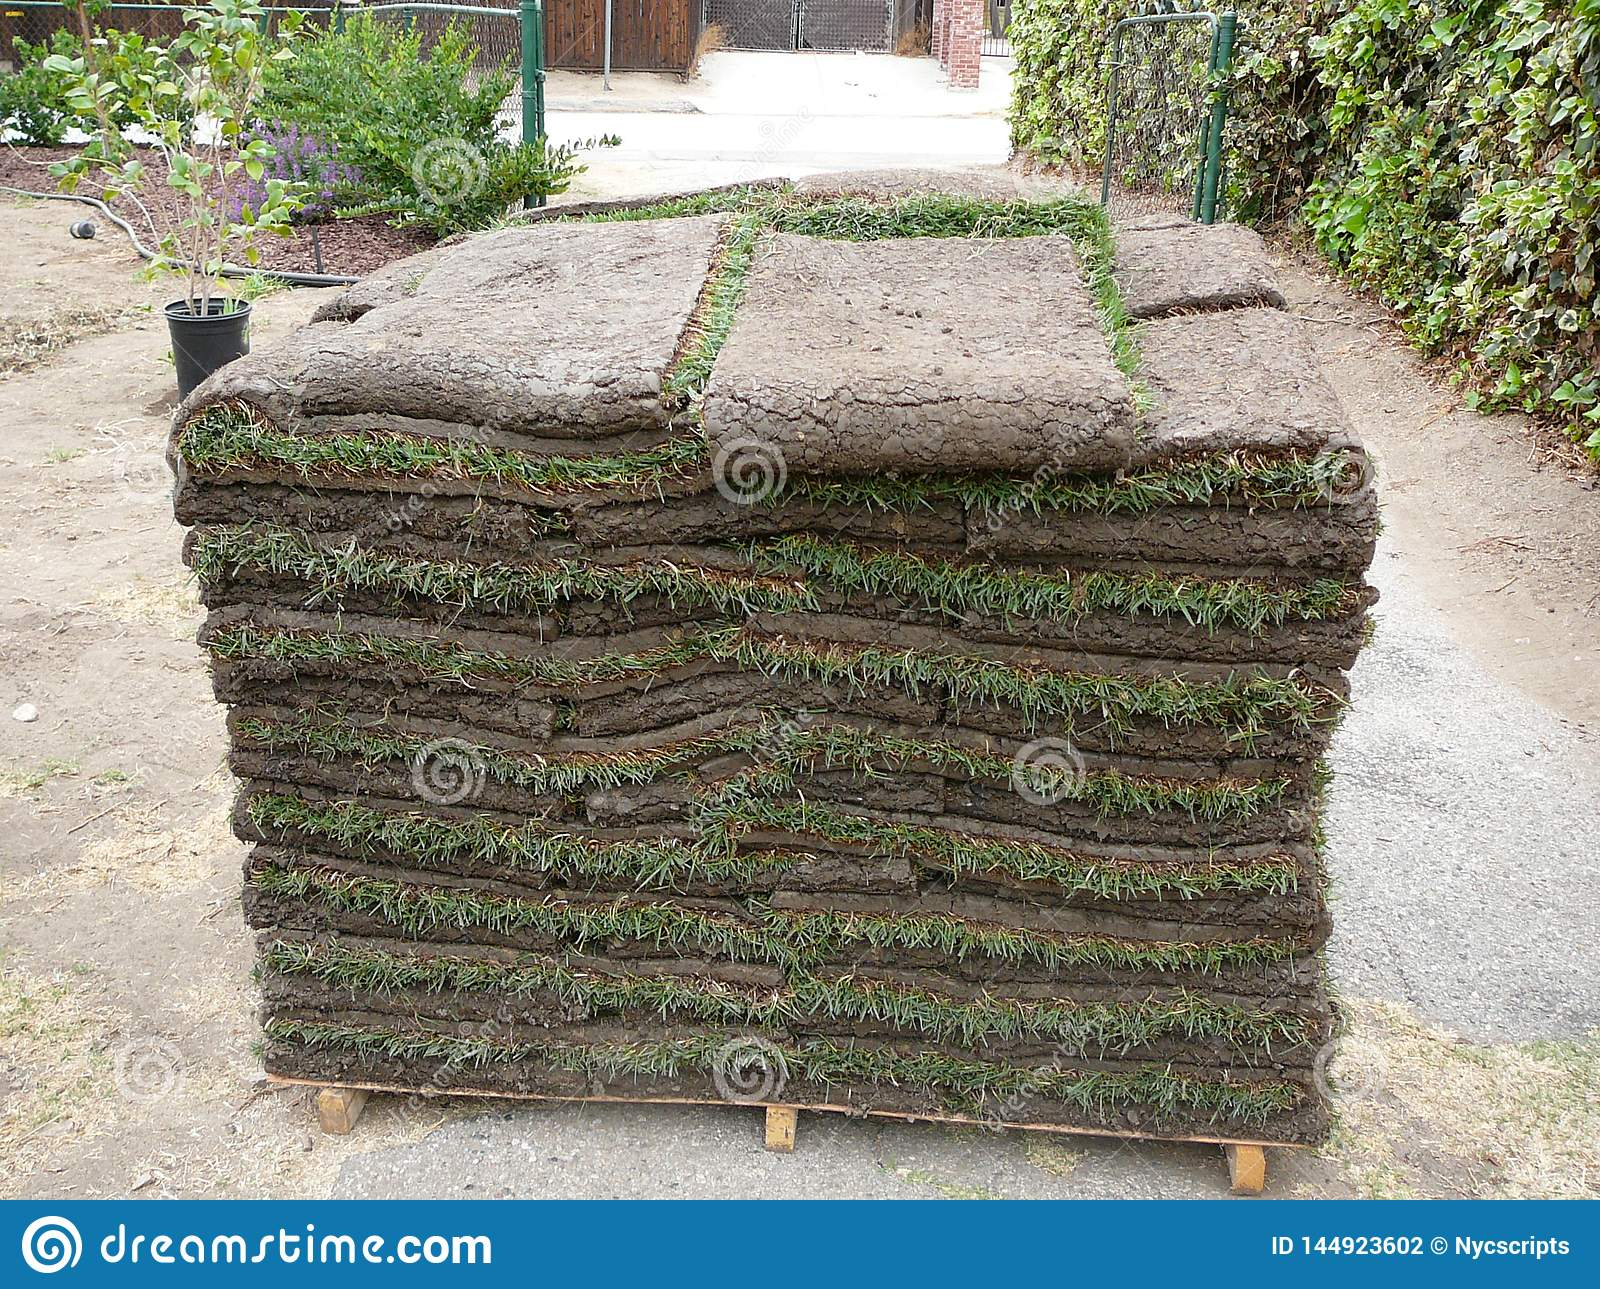 Sod Stacked for Lawn